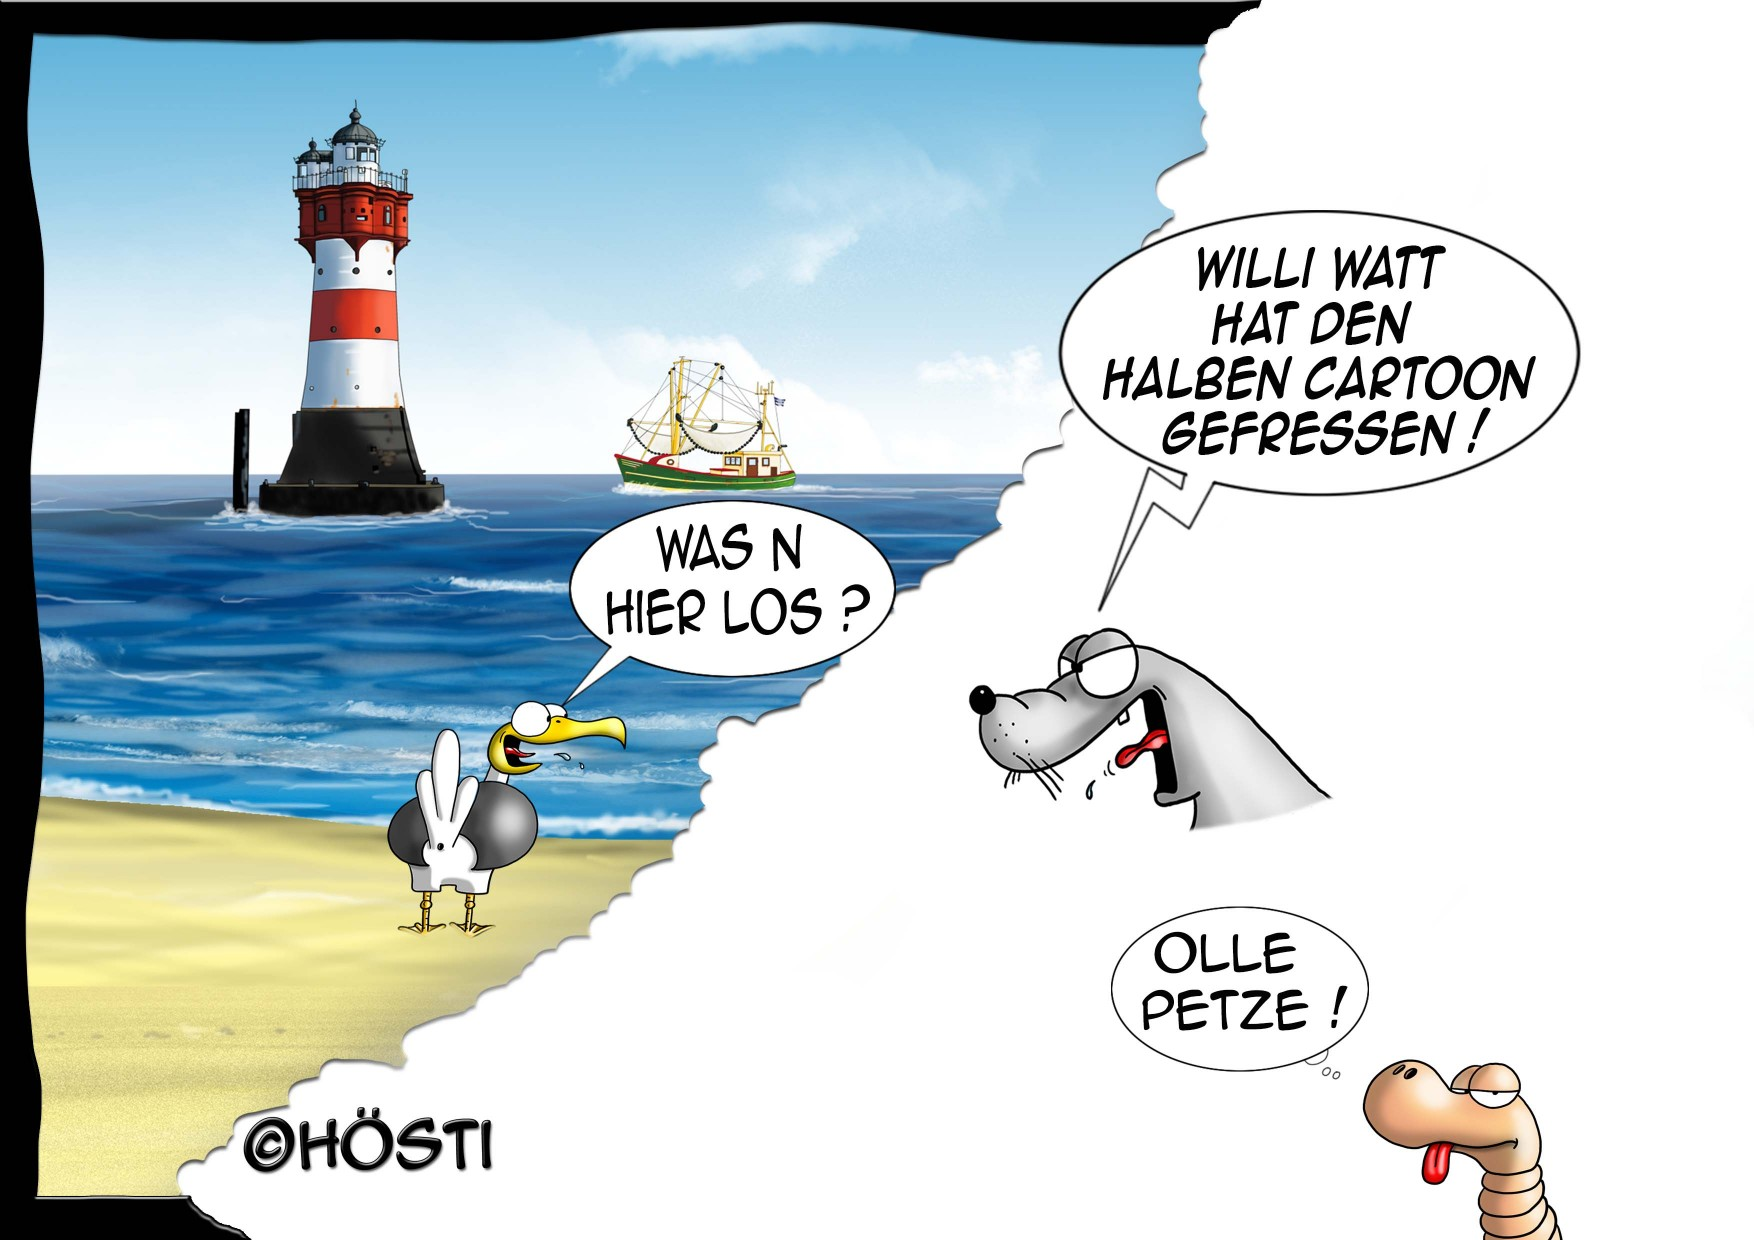 ek-halben-cartoon-gefressen.jpg